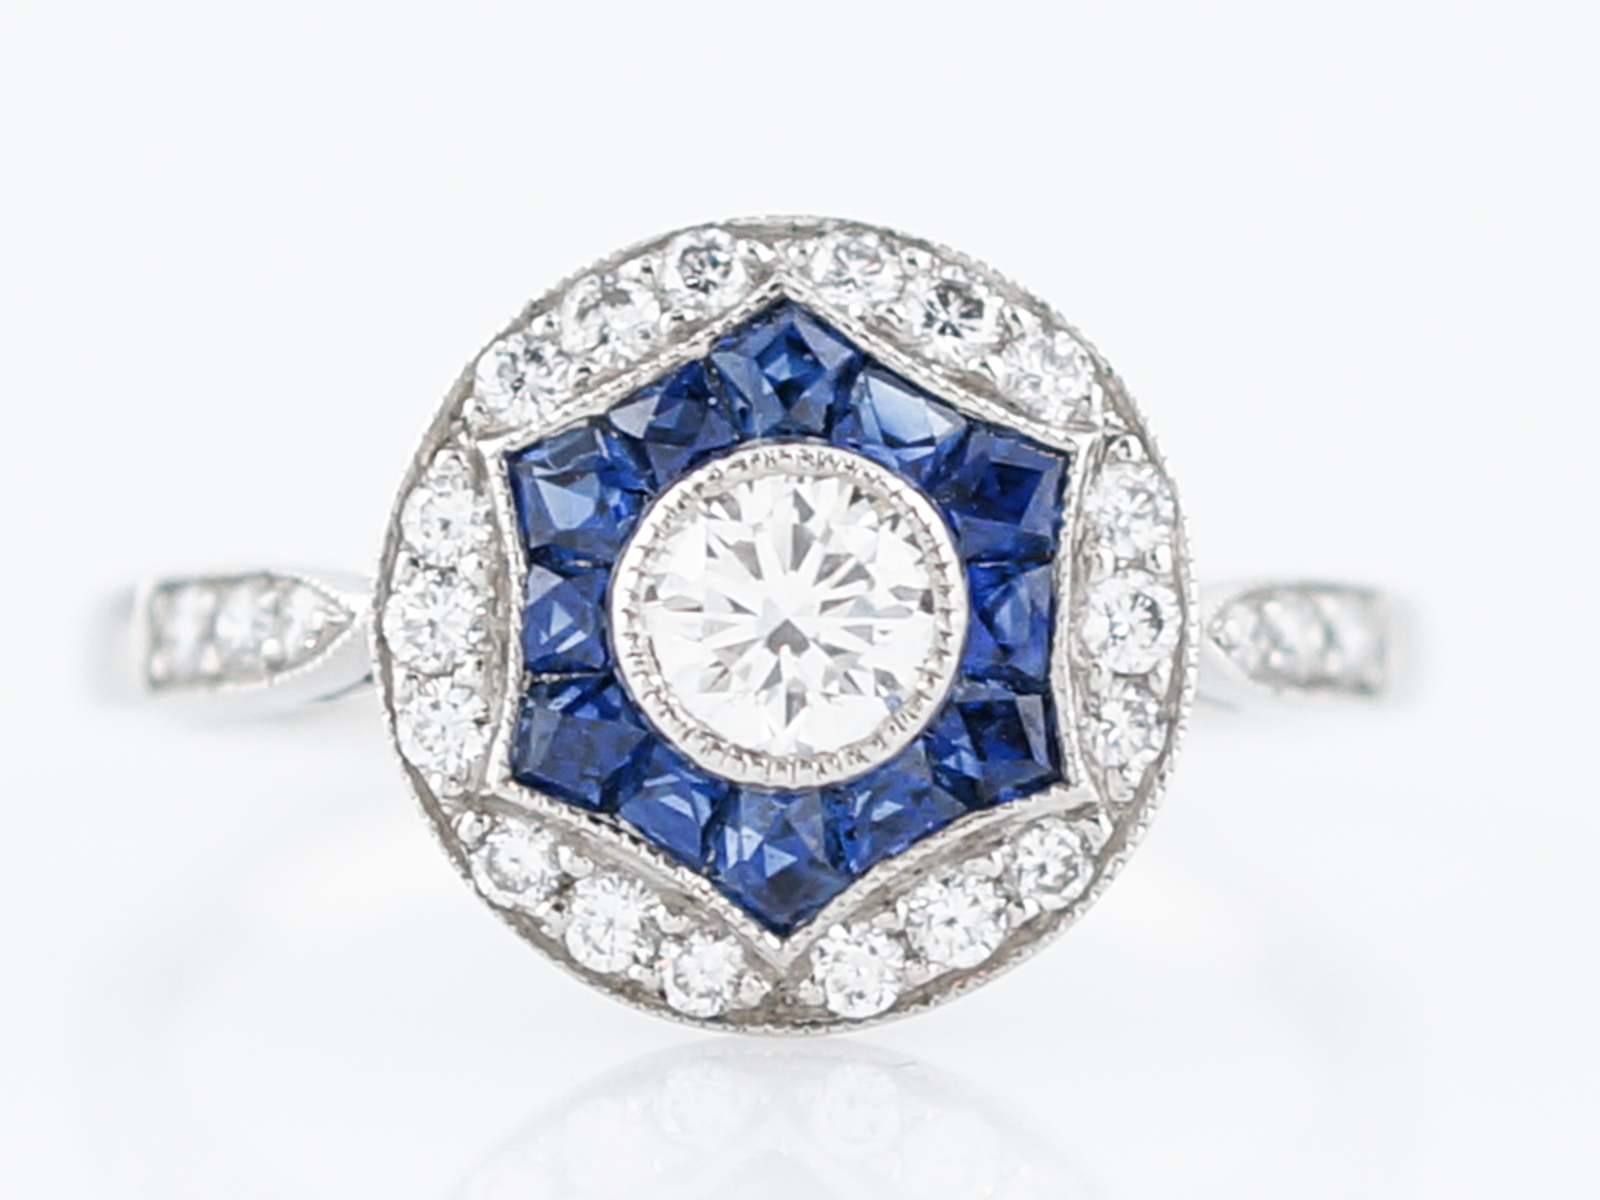 .50 Carat Diamond & Sapphire Halo Engagement Ring